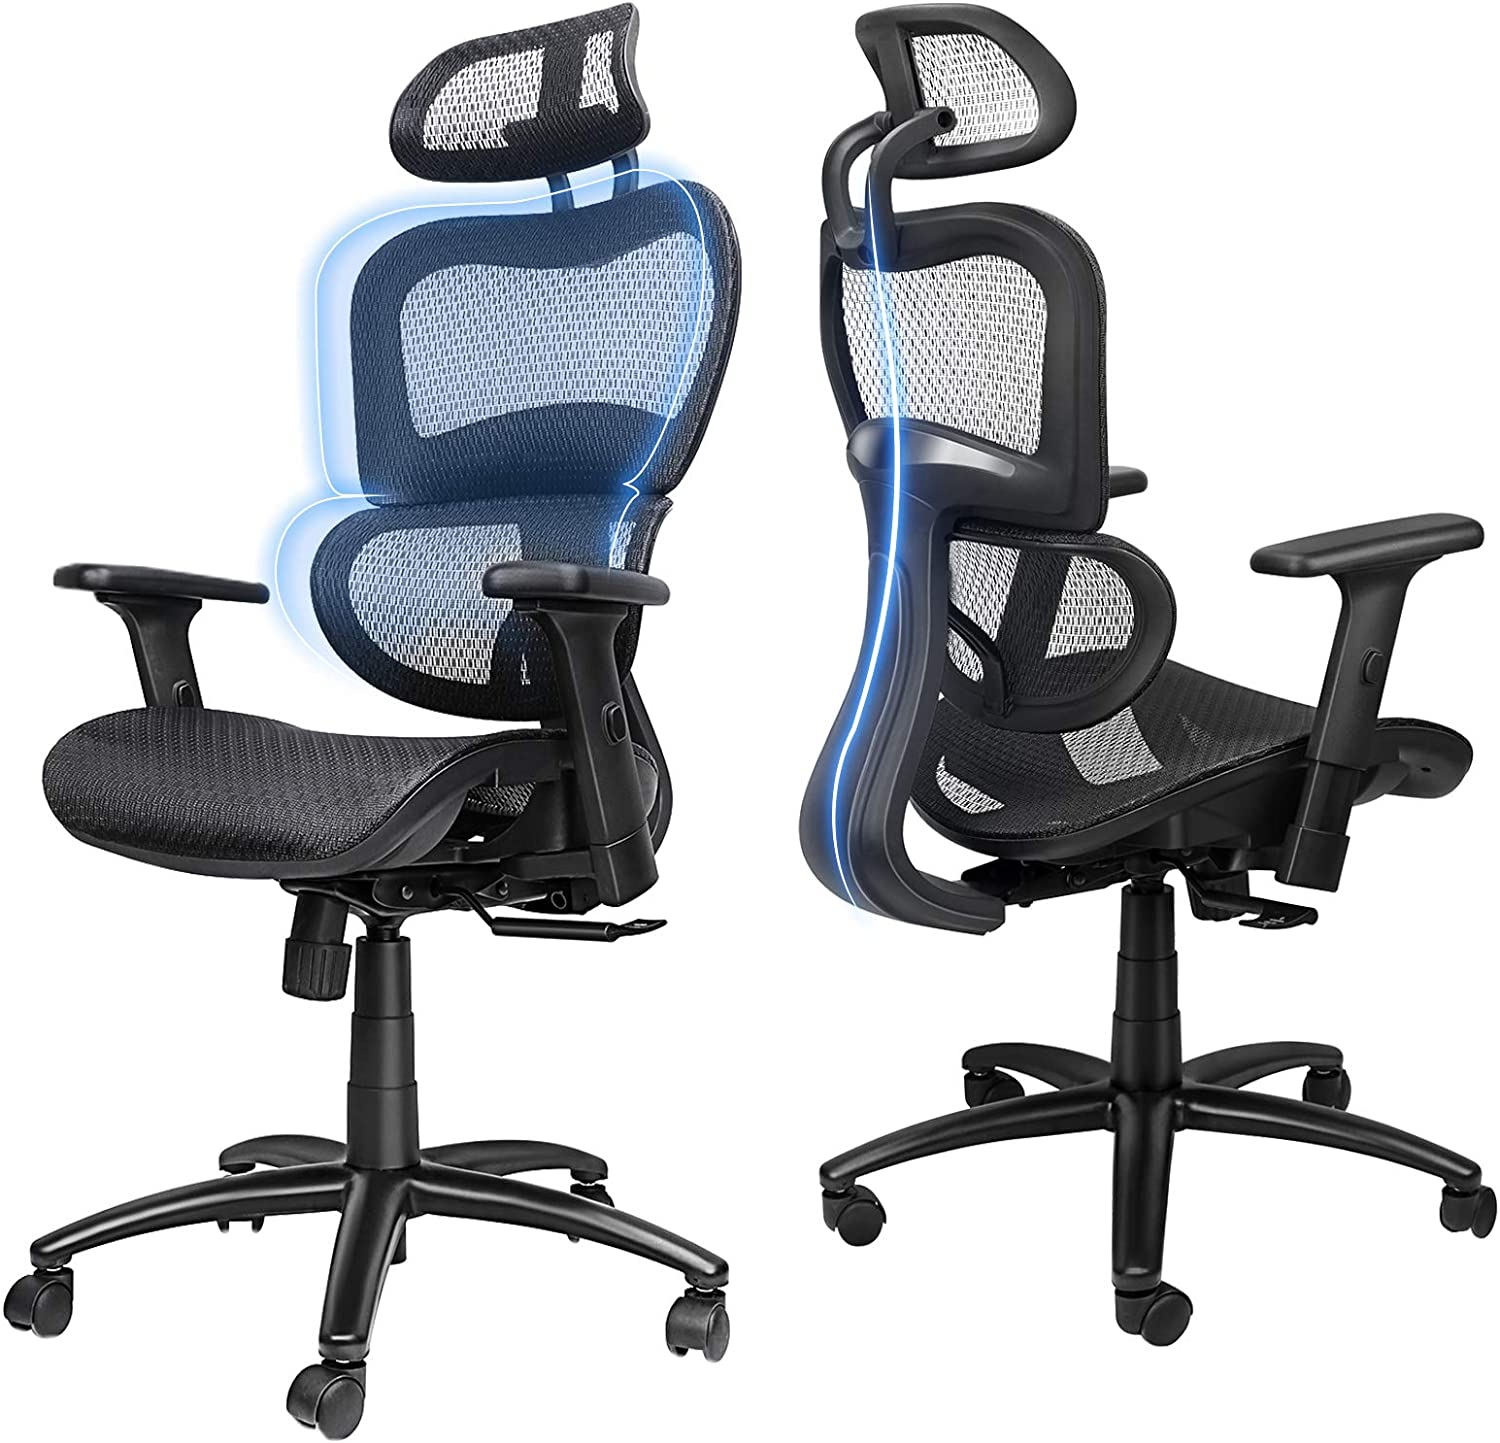 71iyy3ZGFNL. AC SL1500 - What Are The Best Office Chair For Degenerative Disc Disease - ChairPicks